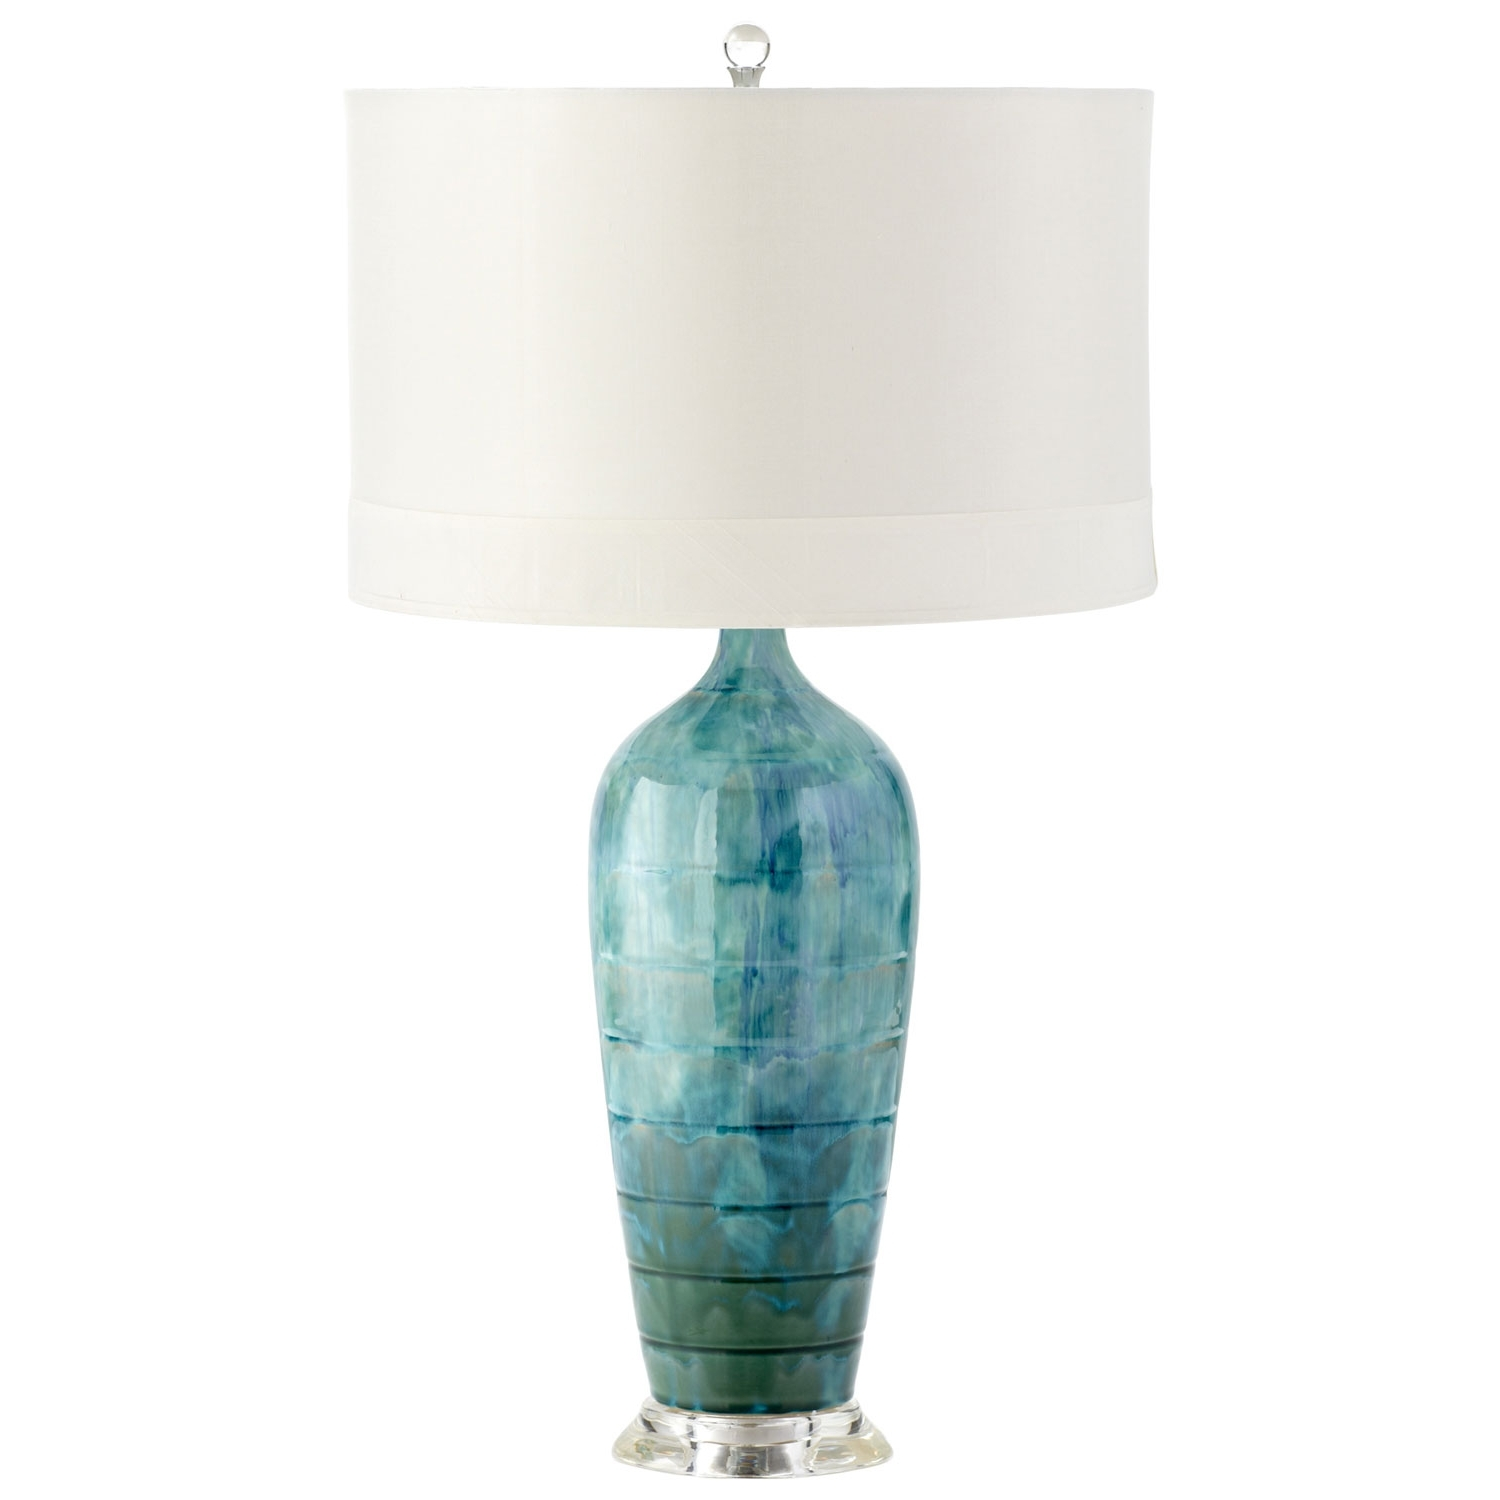 Top 56 Fab Vintage Floor Lamps 5 Light Lamp Green Living Room Funky In Most Up To Date Teal Living Room Table Lamps (View 2 of 20)